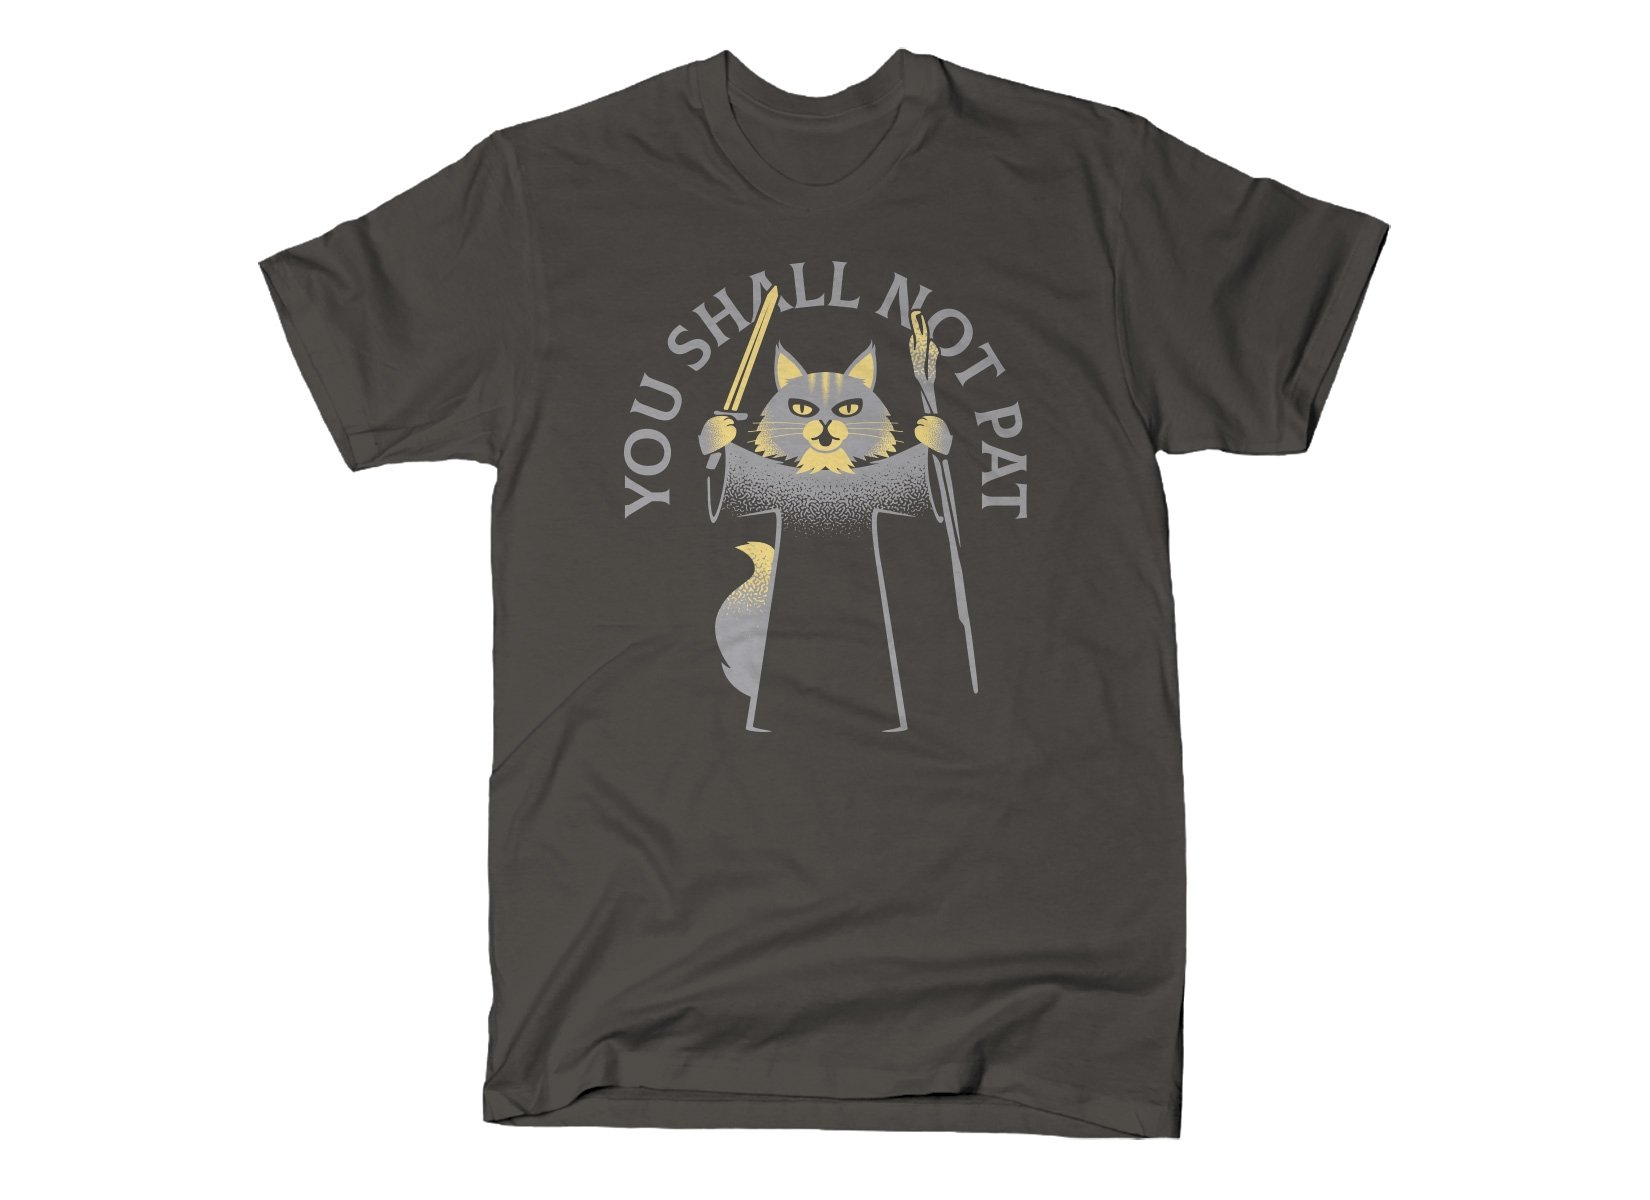 You Shall Not Pat on Mens T-Shirt